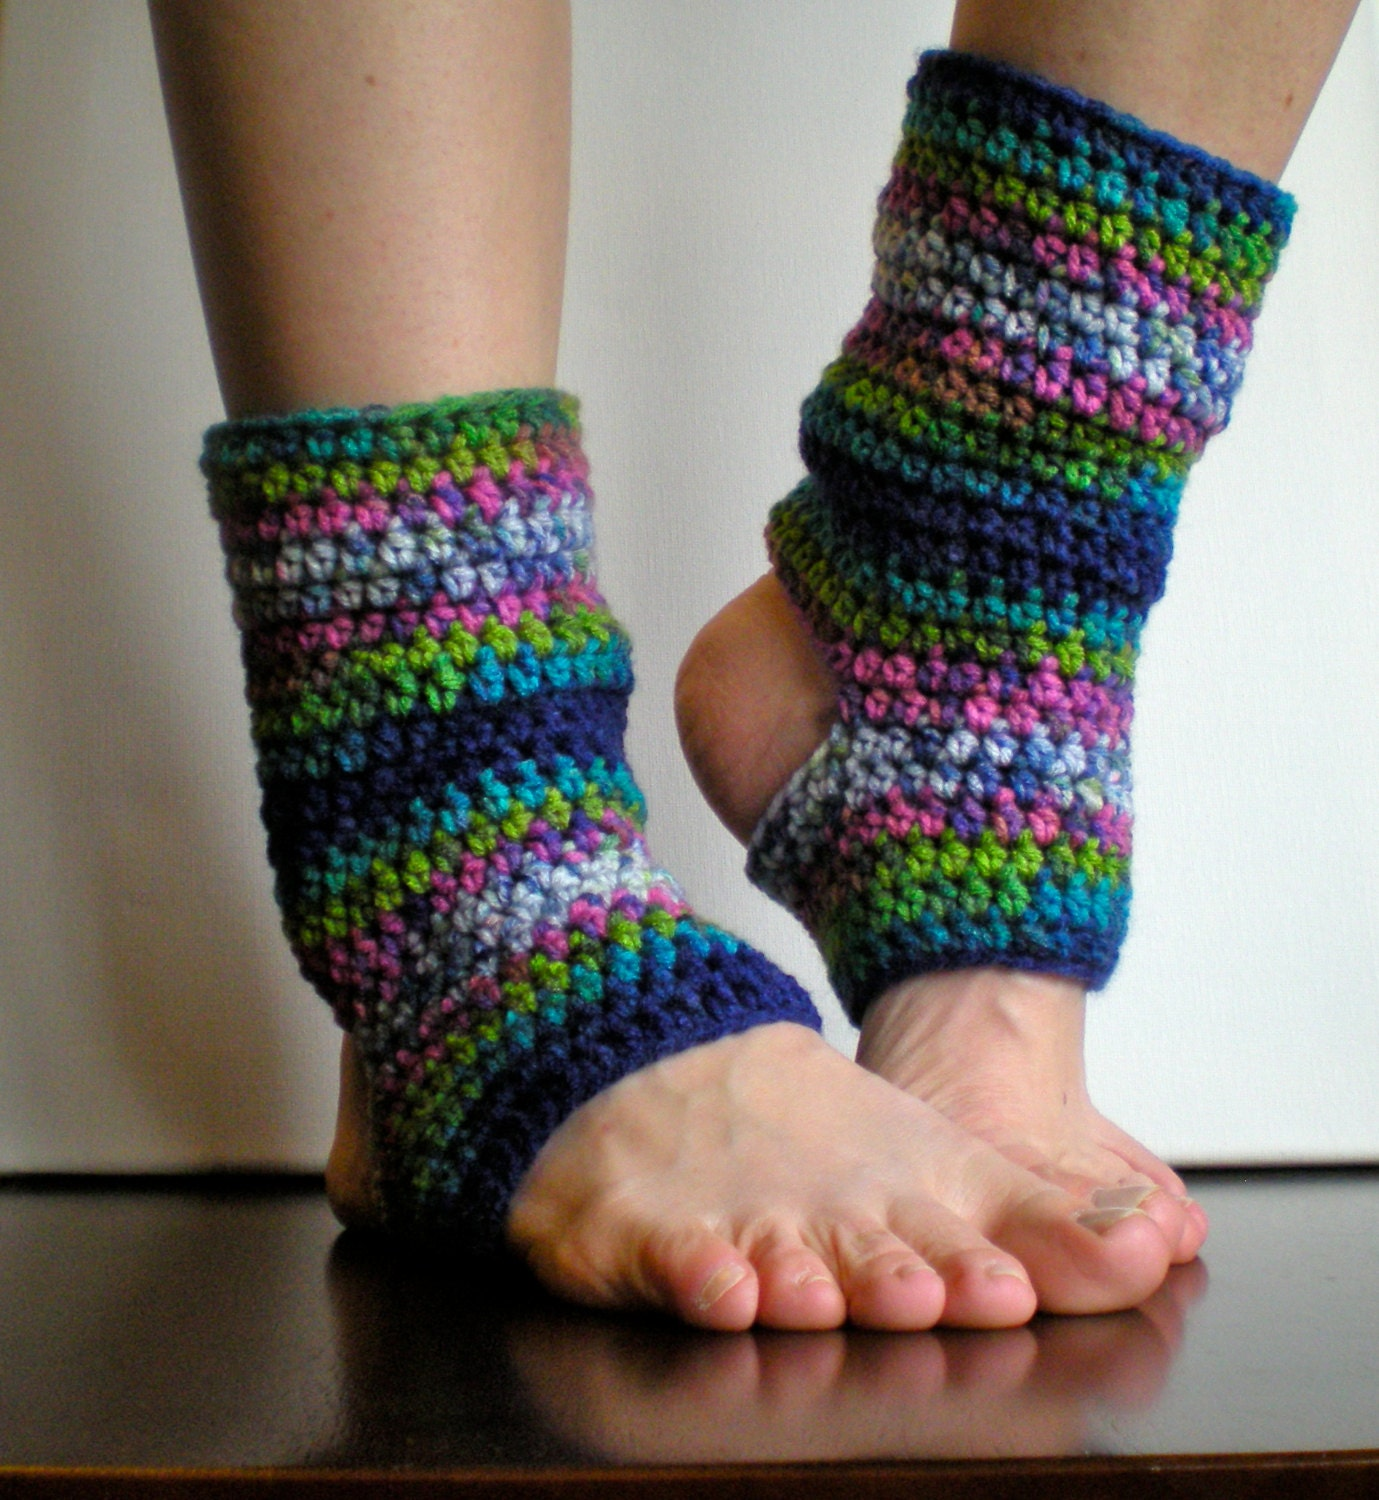 Crochet Patterns Leg Warmers : PATTERN: Short Warmers, Easy Crochet PDF, Leg Warmers, yoga socks ...